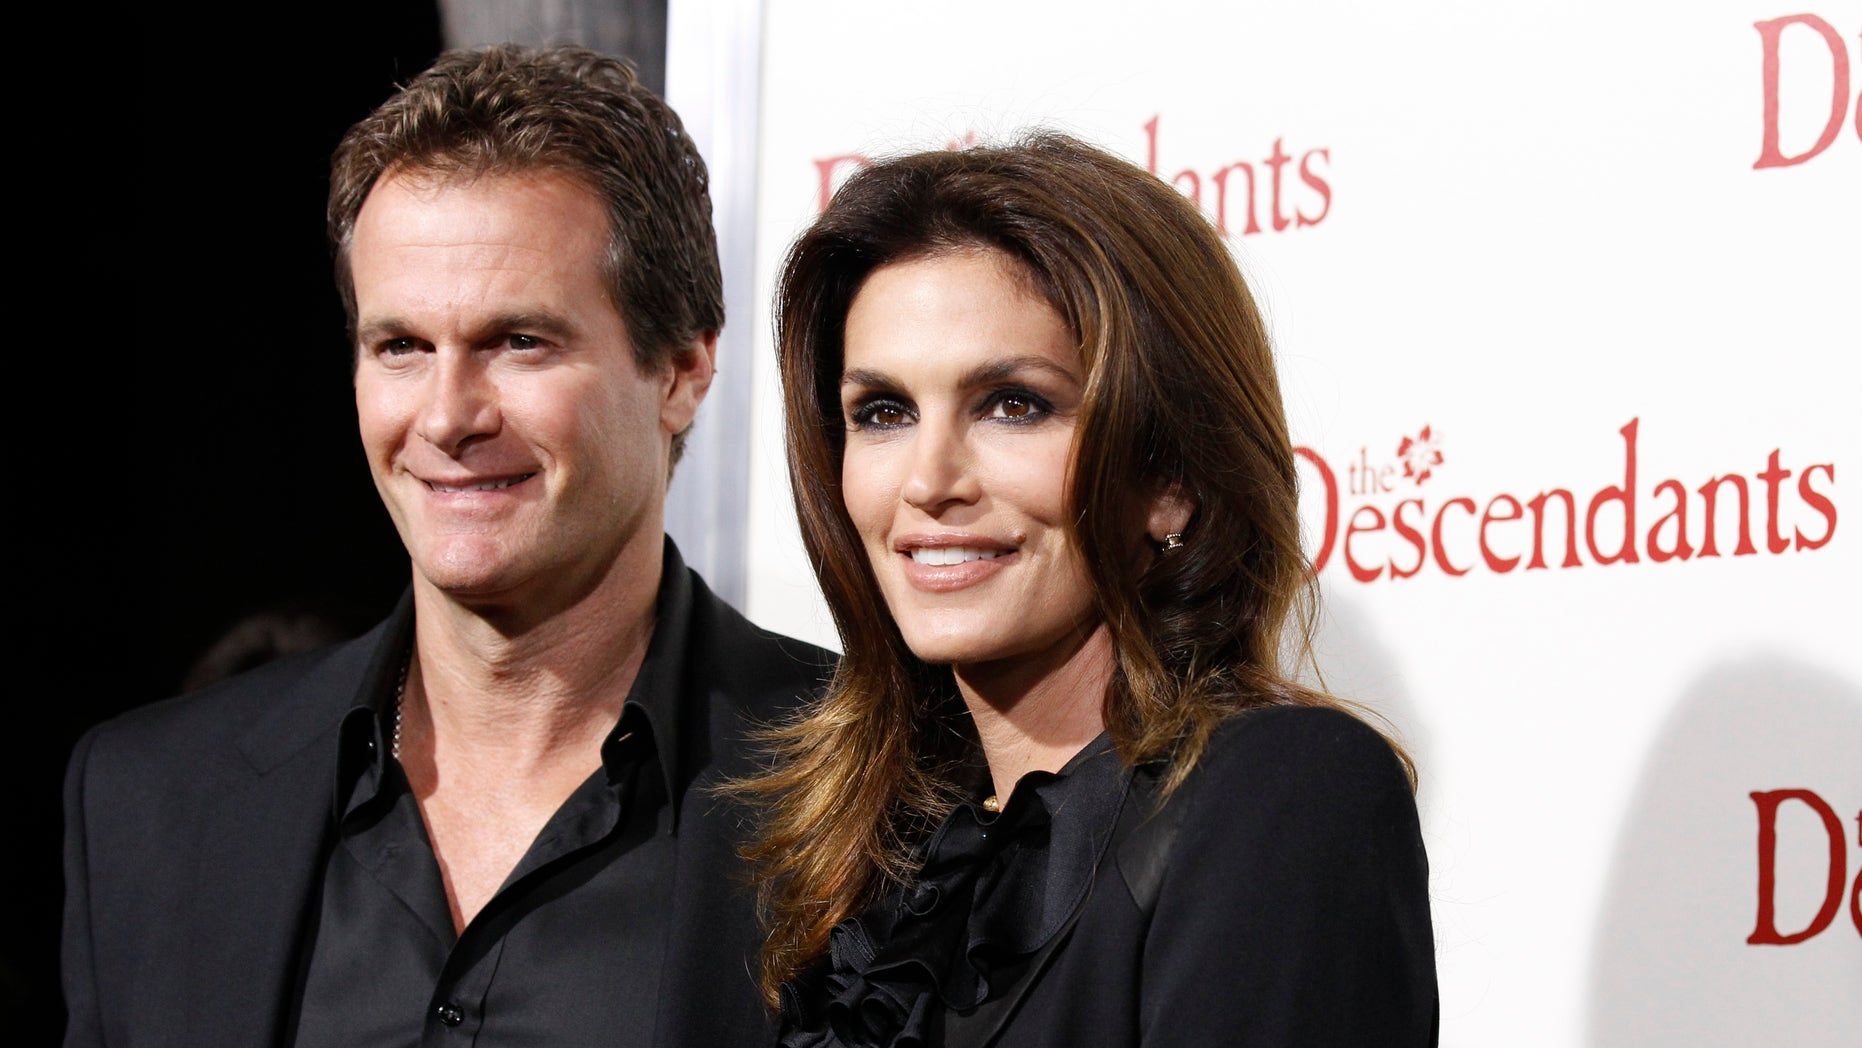 Cindy Crawford and husband Rande Gerber in 2011.